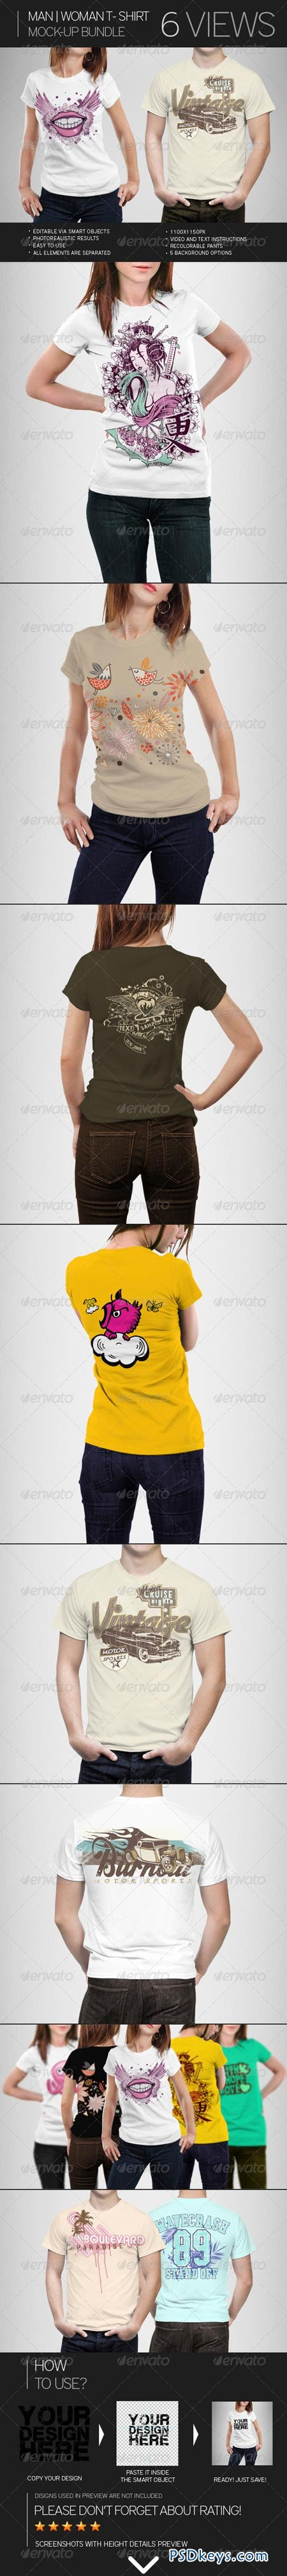 Man Woman T-Shirt Mock-Up Bundle 7666529